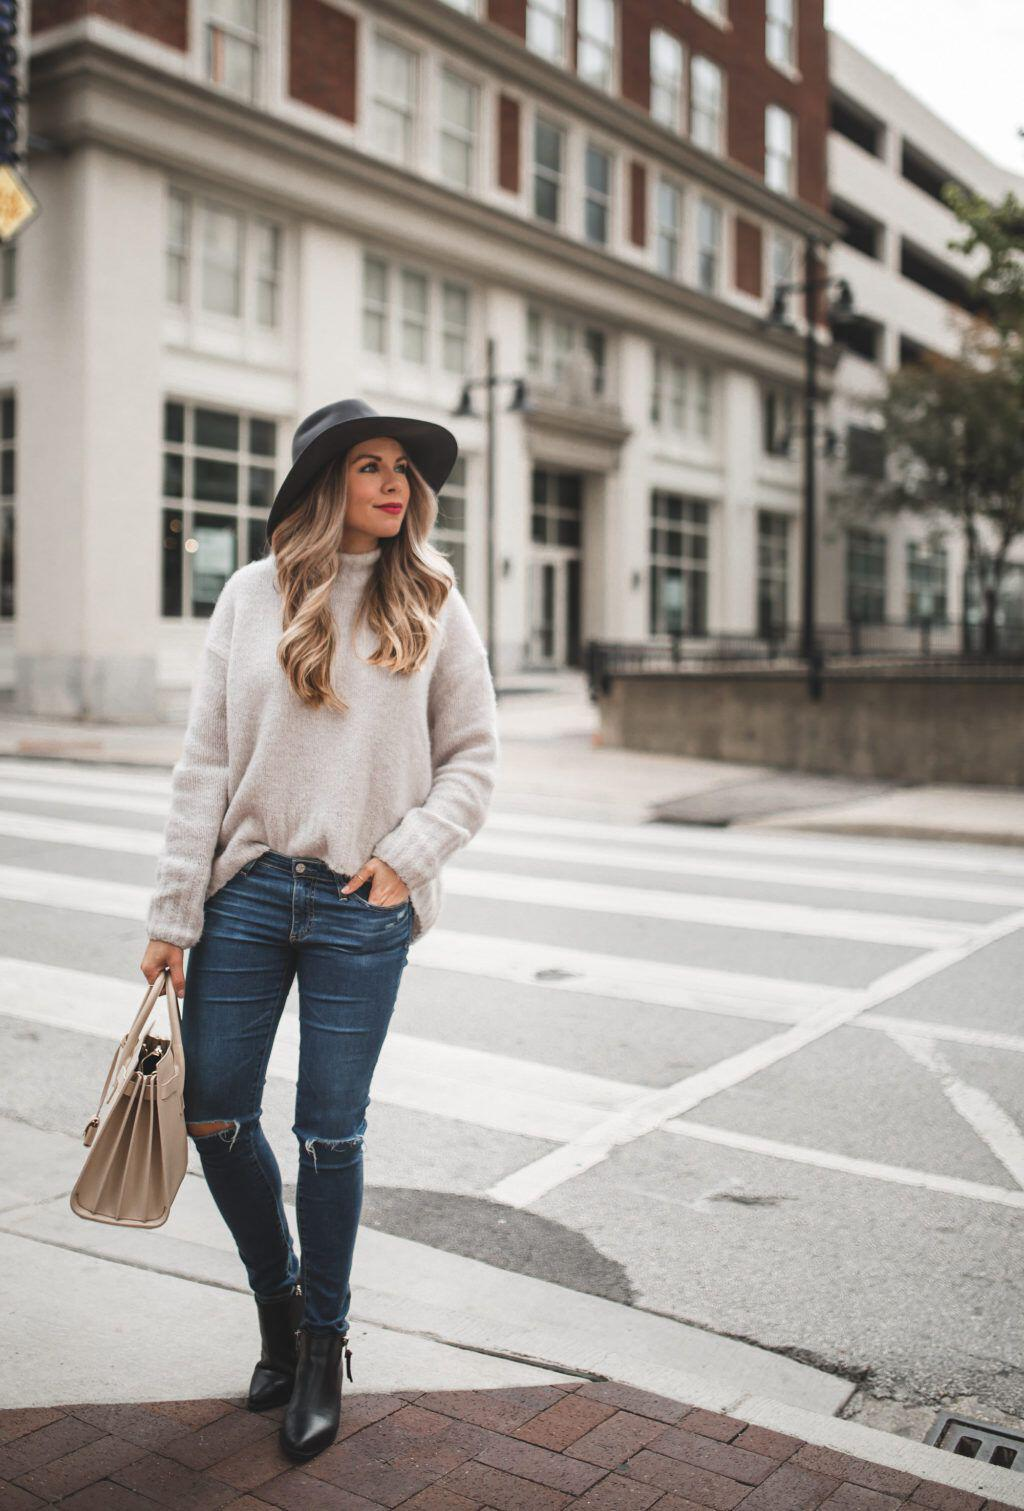 25 stylish winter outfits with boyfriend jeans and sweaters - 25 stylish winter outfits with boyfriend jeans and sweaters